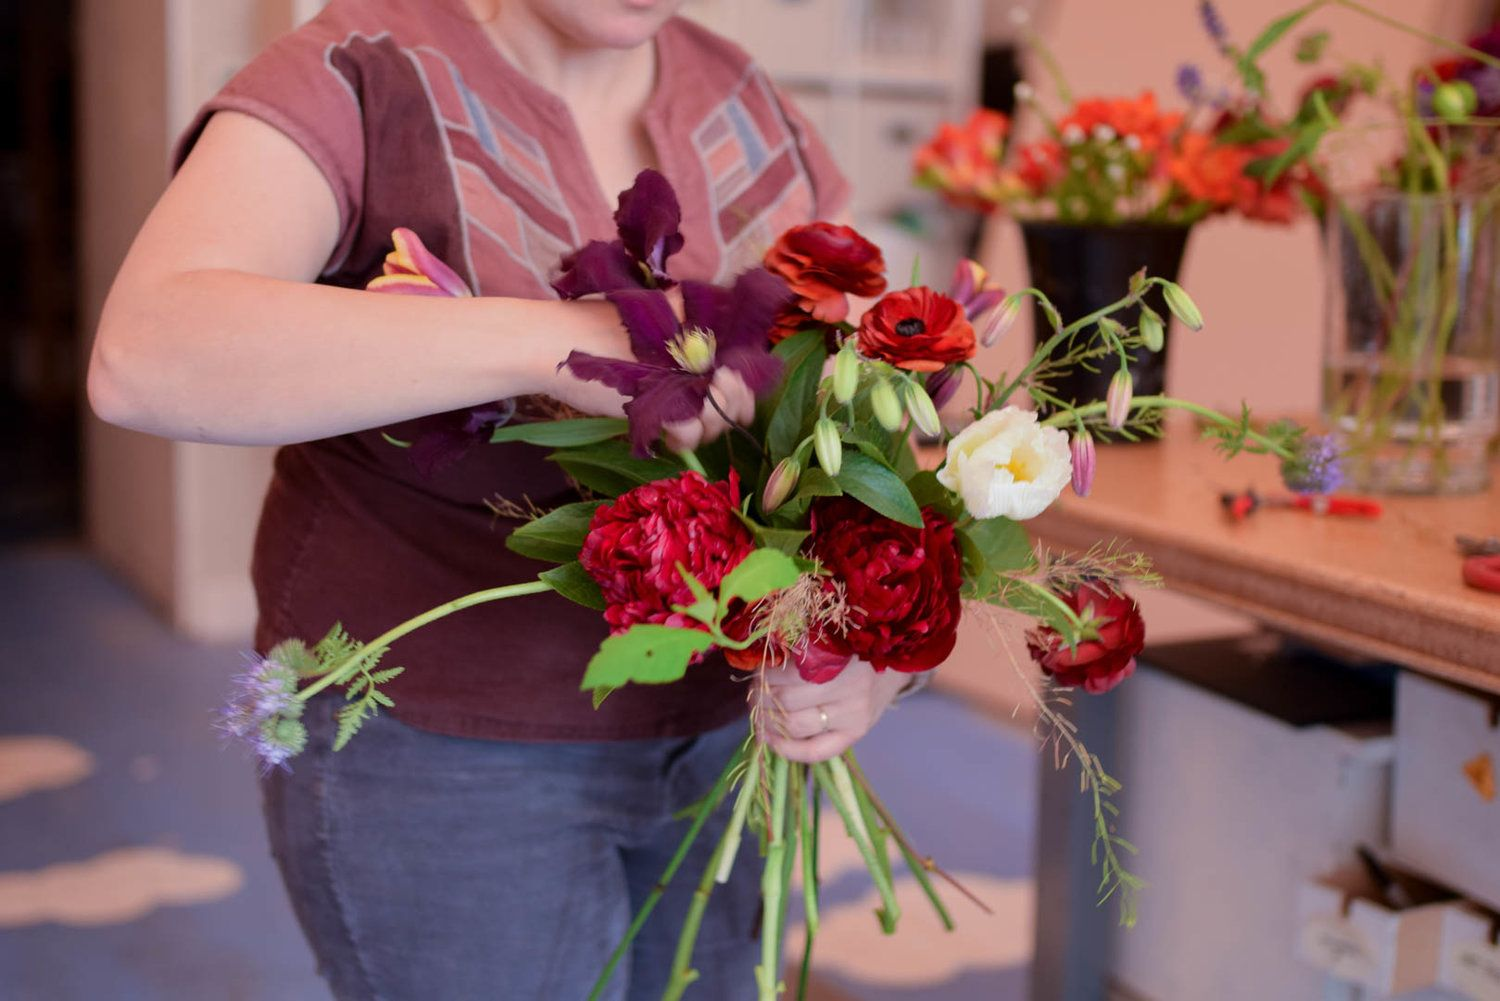 Seasonal Flowers Are My Favorite To Design With But Using